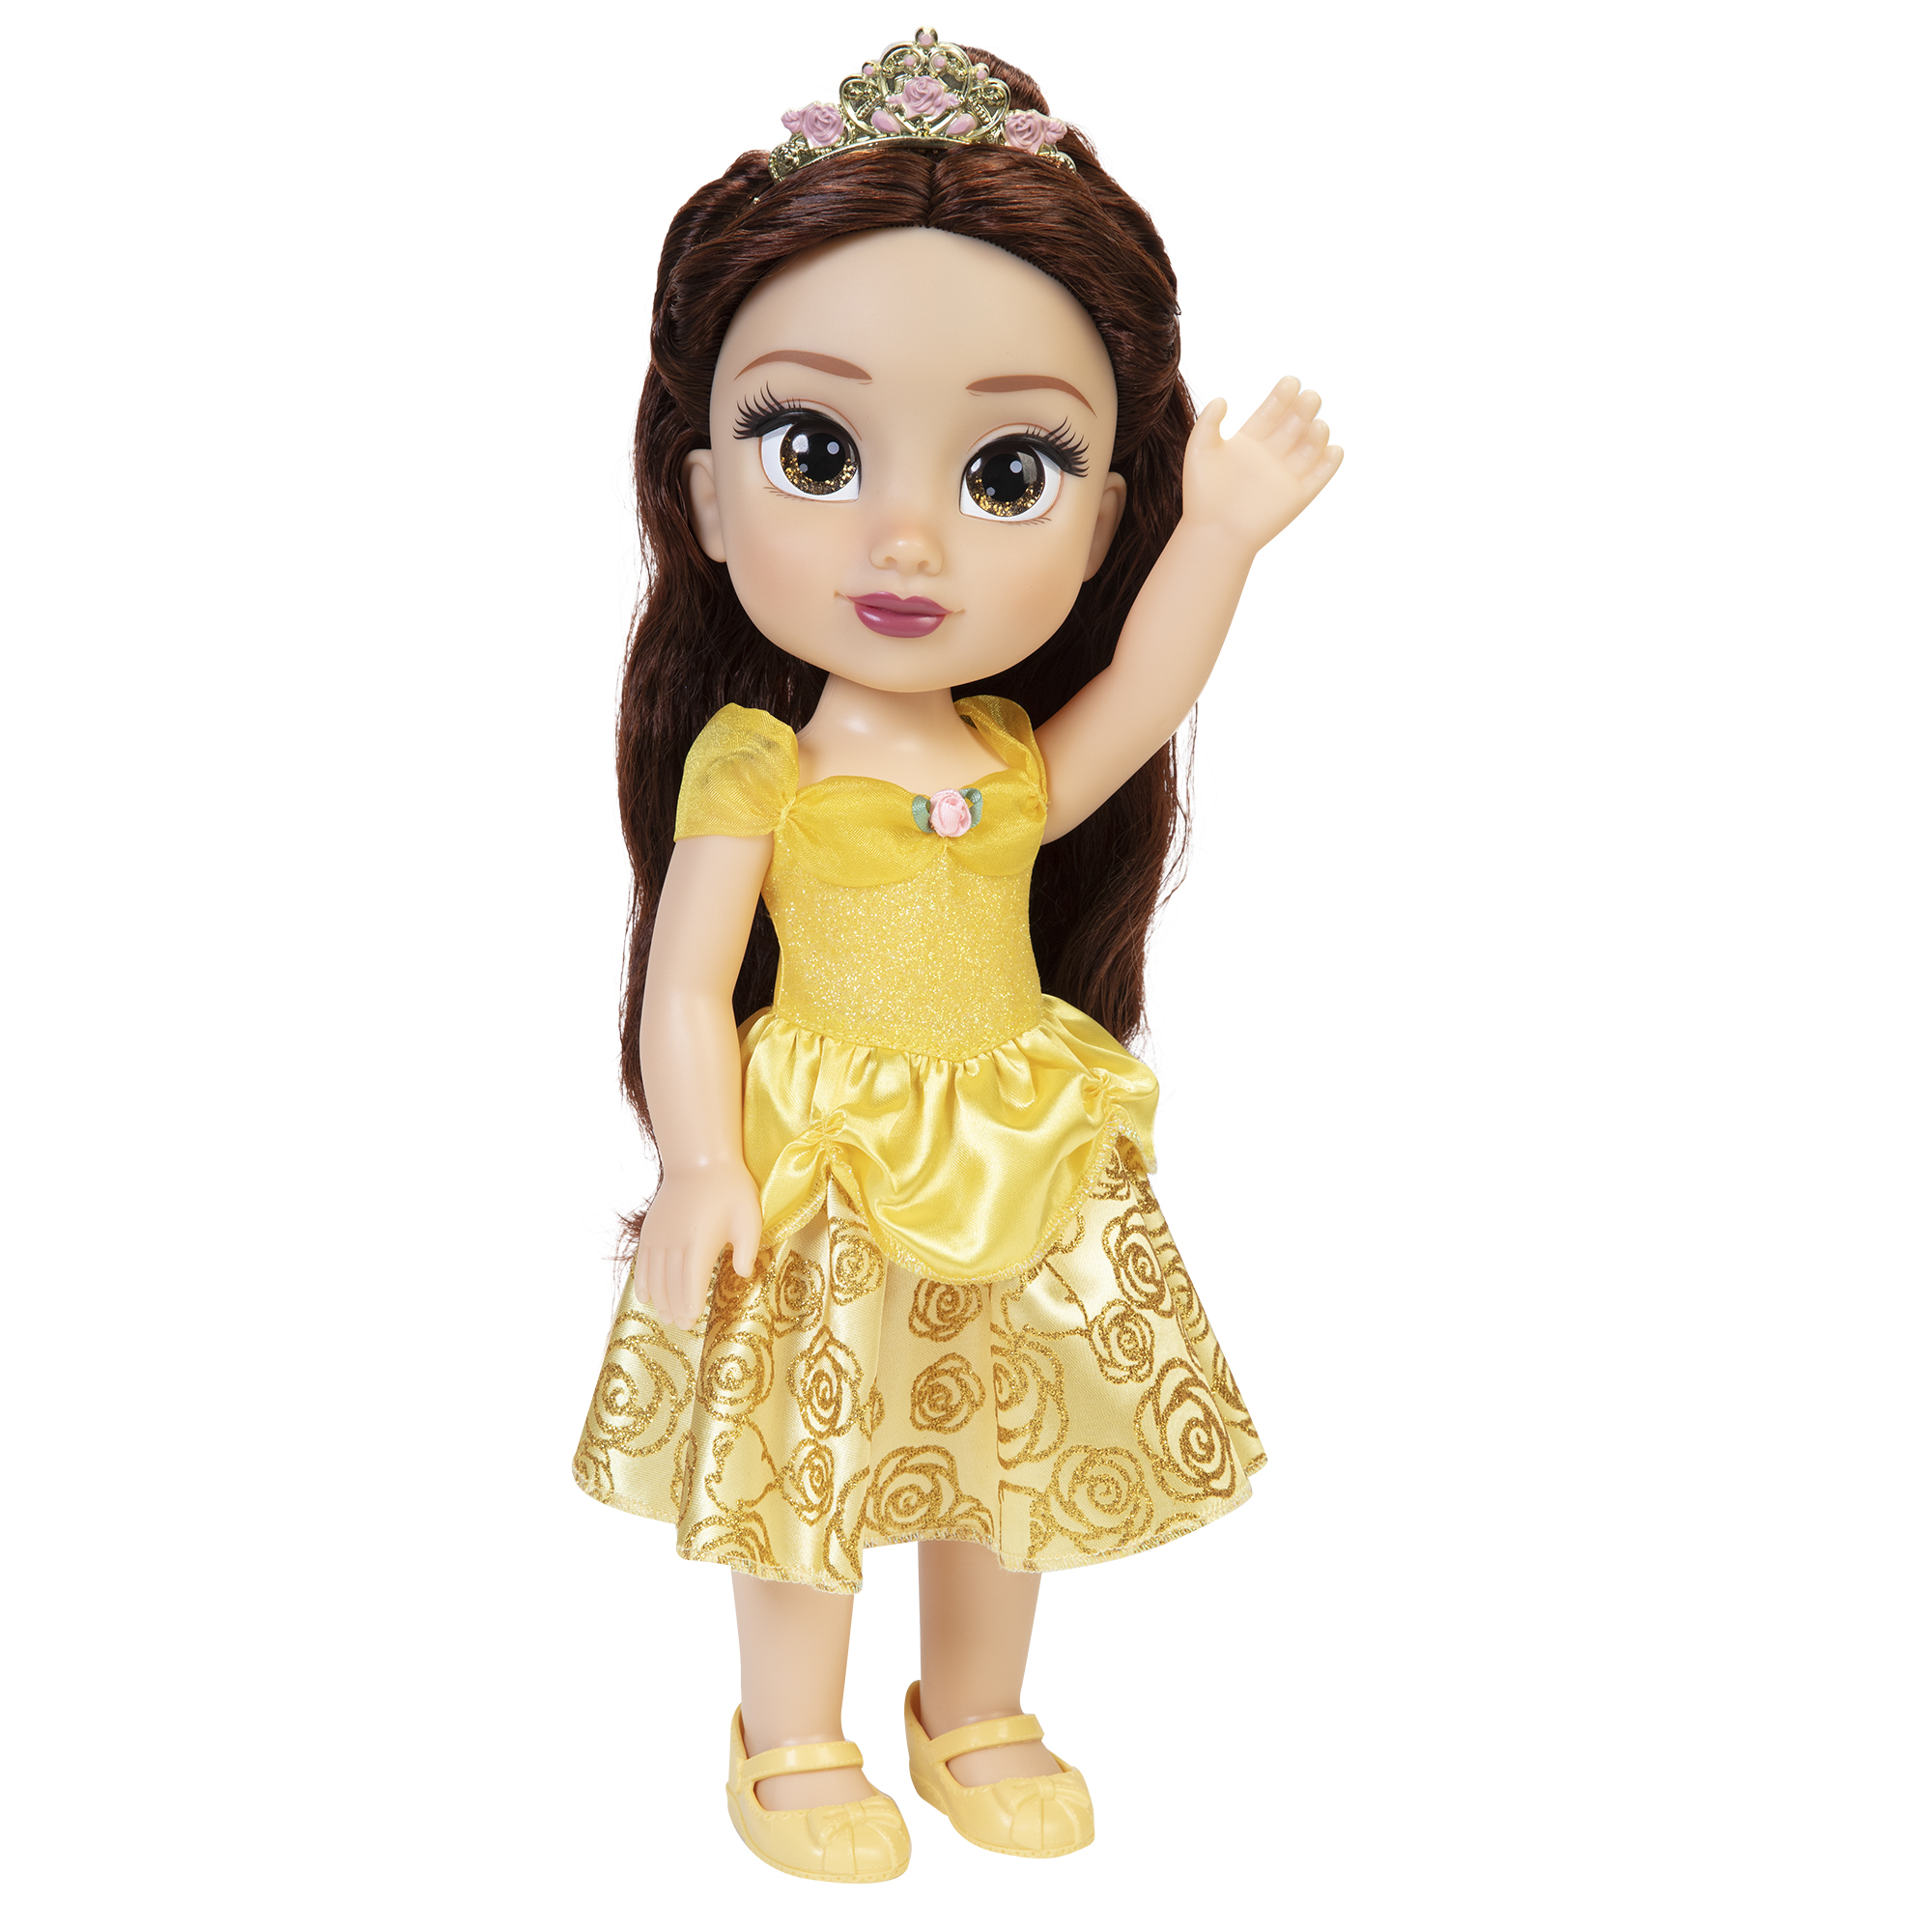 Disney Princess My Friend Belle Doll